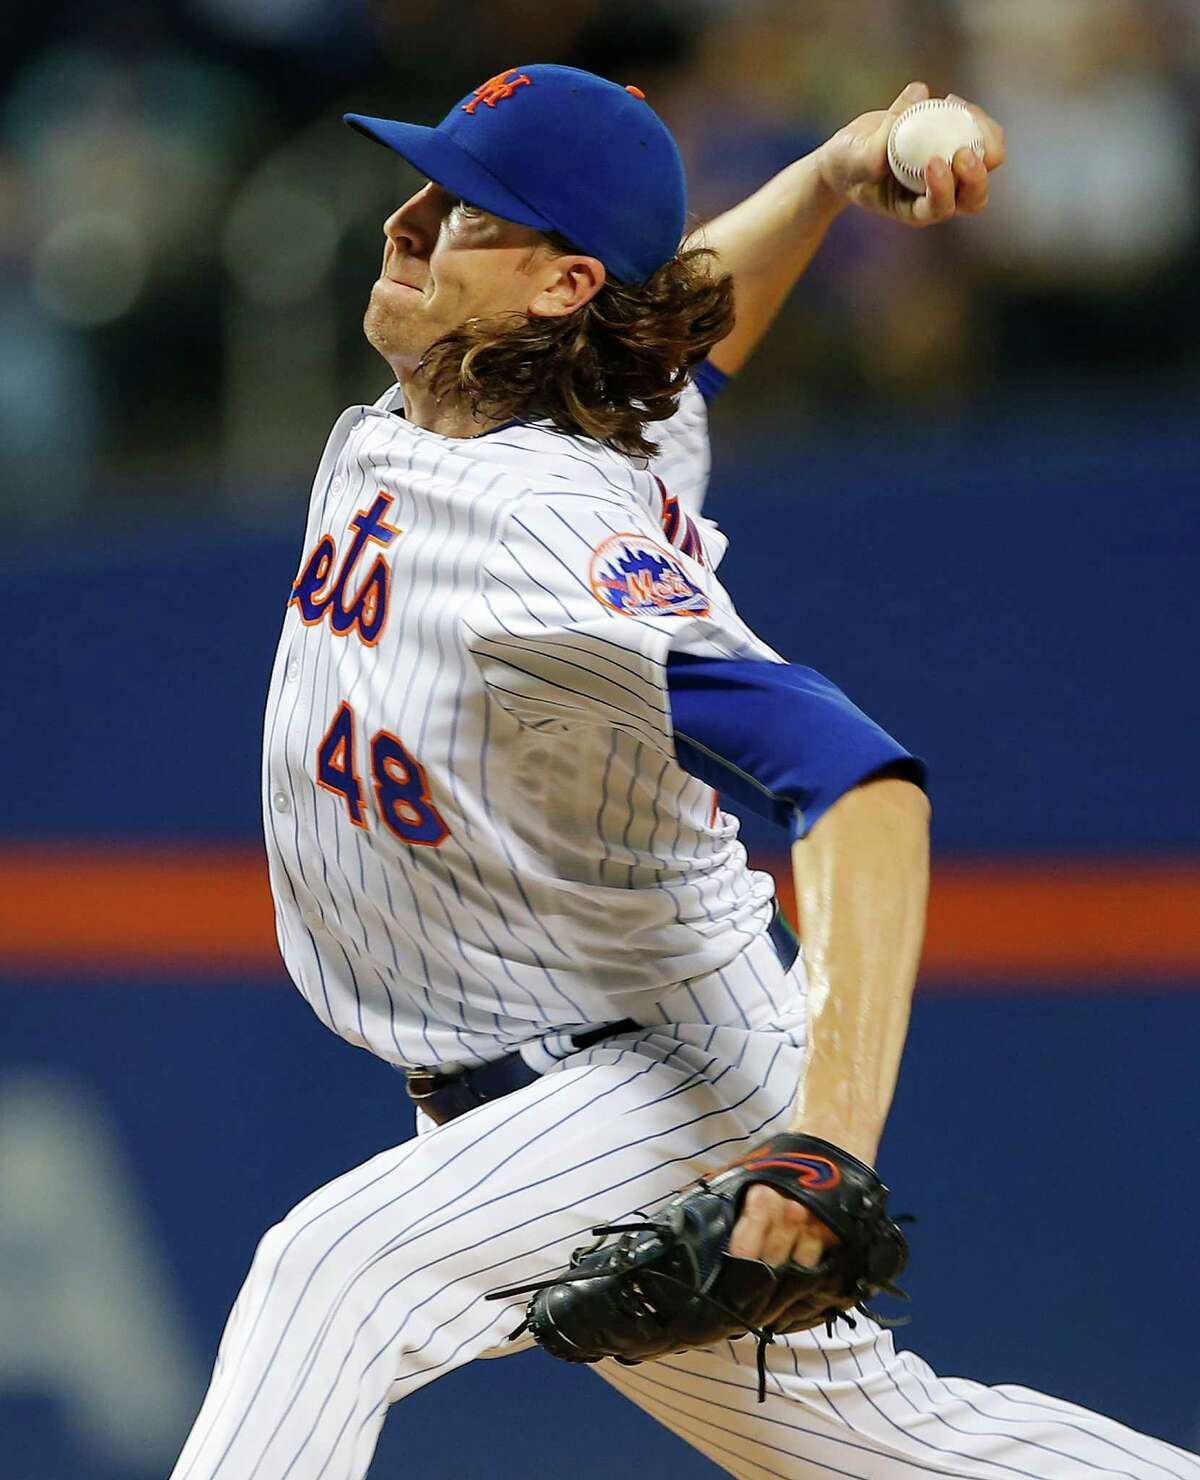 NEW YORK, NY - SEPTEMBER 01: Pitcher Jacob deGrom #48 of the New York Mets delivers a pitch against the Miami Marlins in the second inning at Citi Field on September 1, 2016 in the Flushing neighborhood of the Queens borough of New York City. (Photo by Rich Schultz/Getty Images) ORG XMIT: 607684419